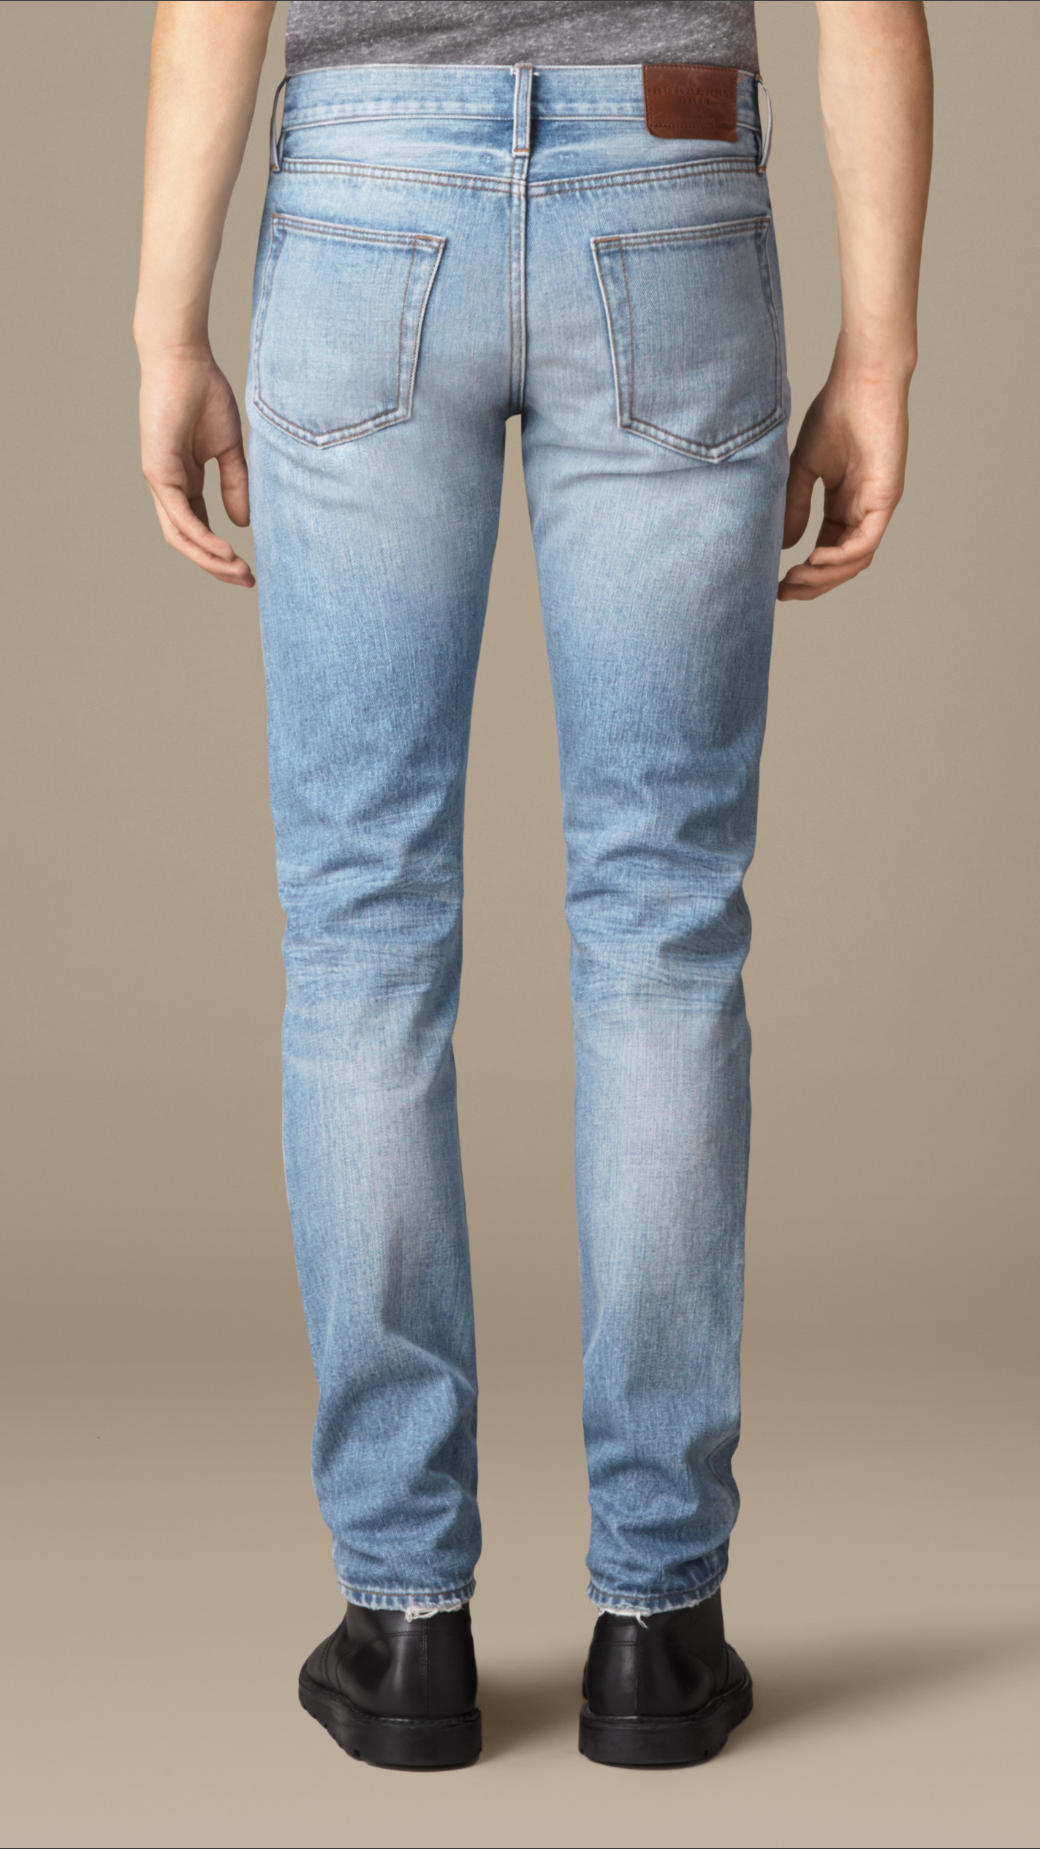 Lyst - Burberry Slim Fit Washed Japanese Denim Jeans in ...